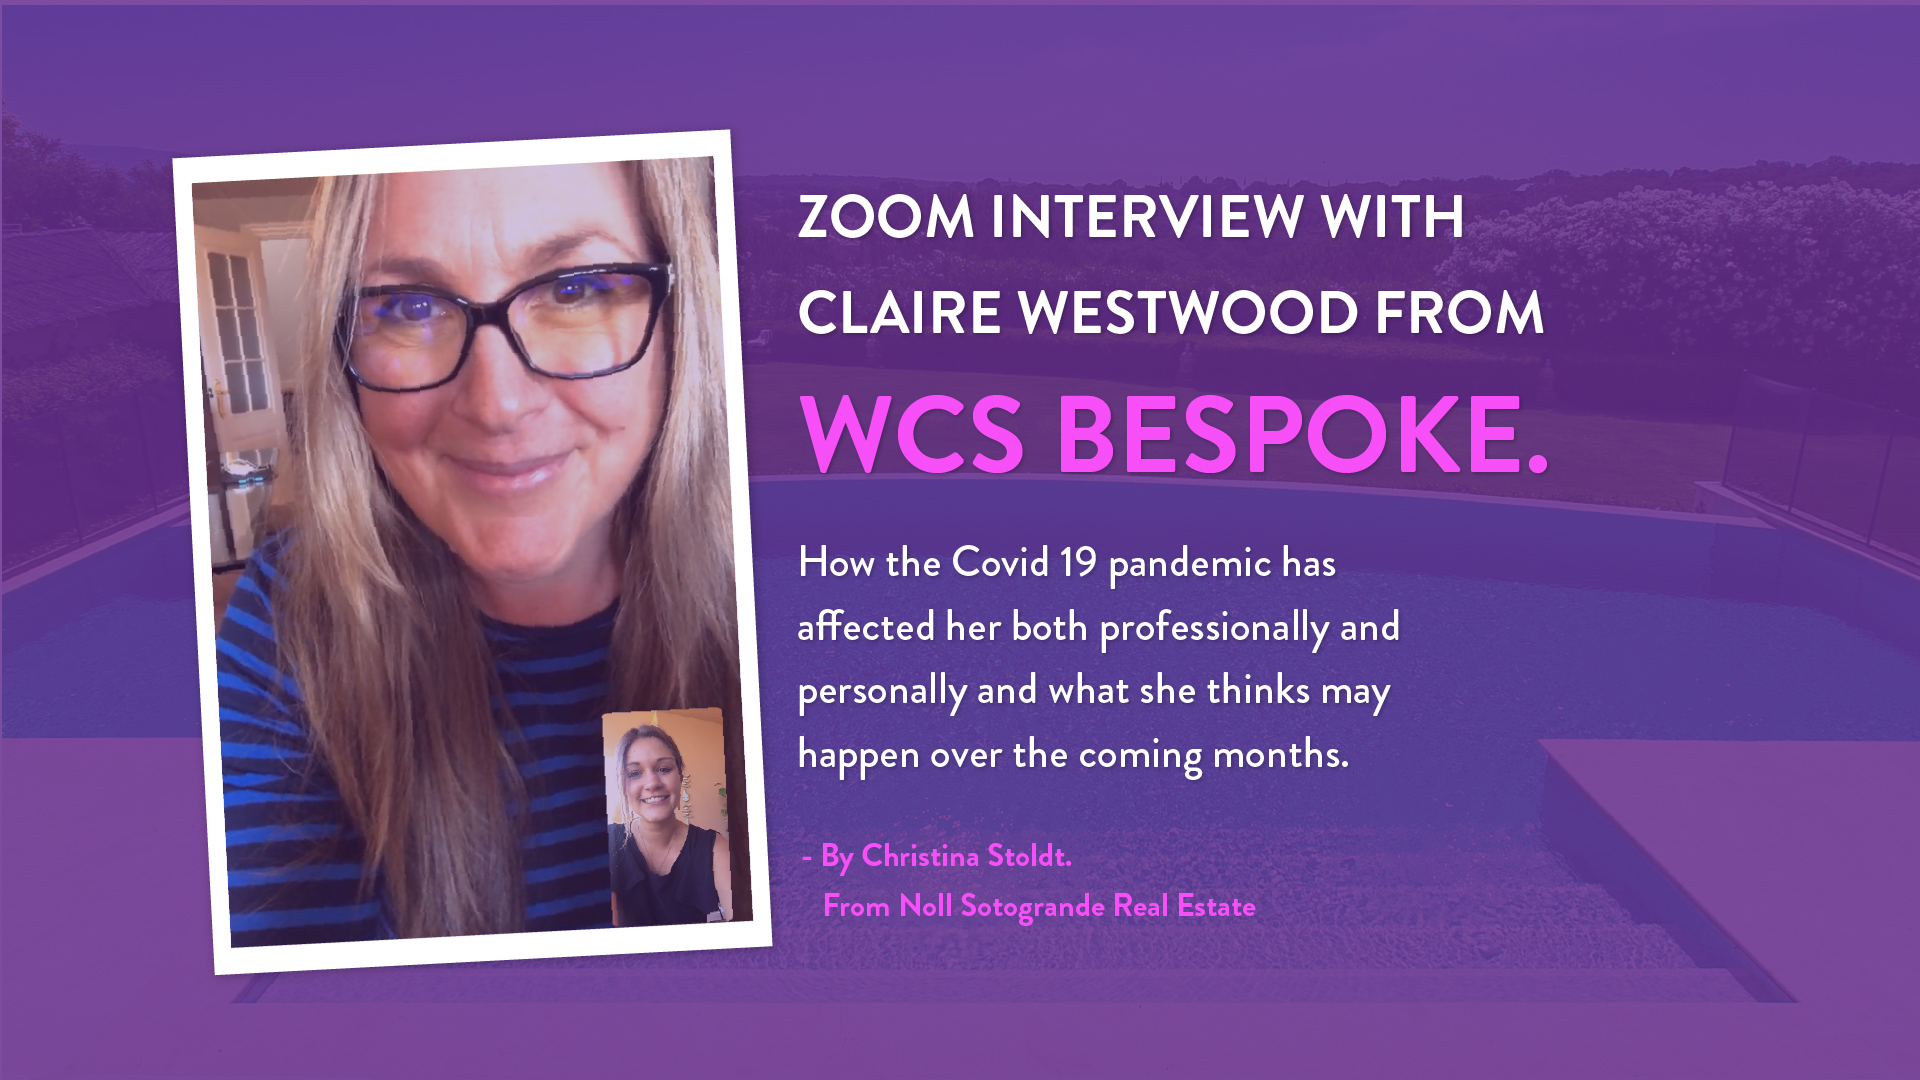 blog-interview-claire-westwood-wcs-bespoke-sotogrande